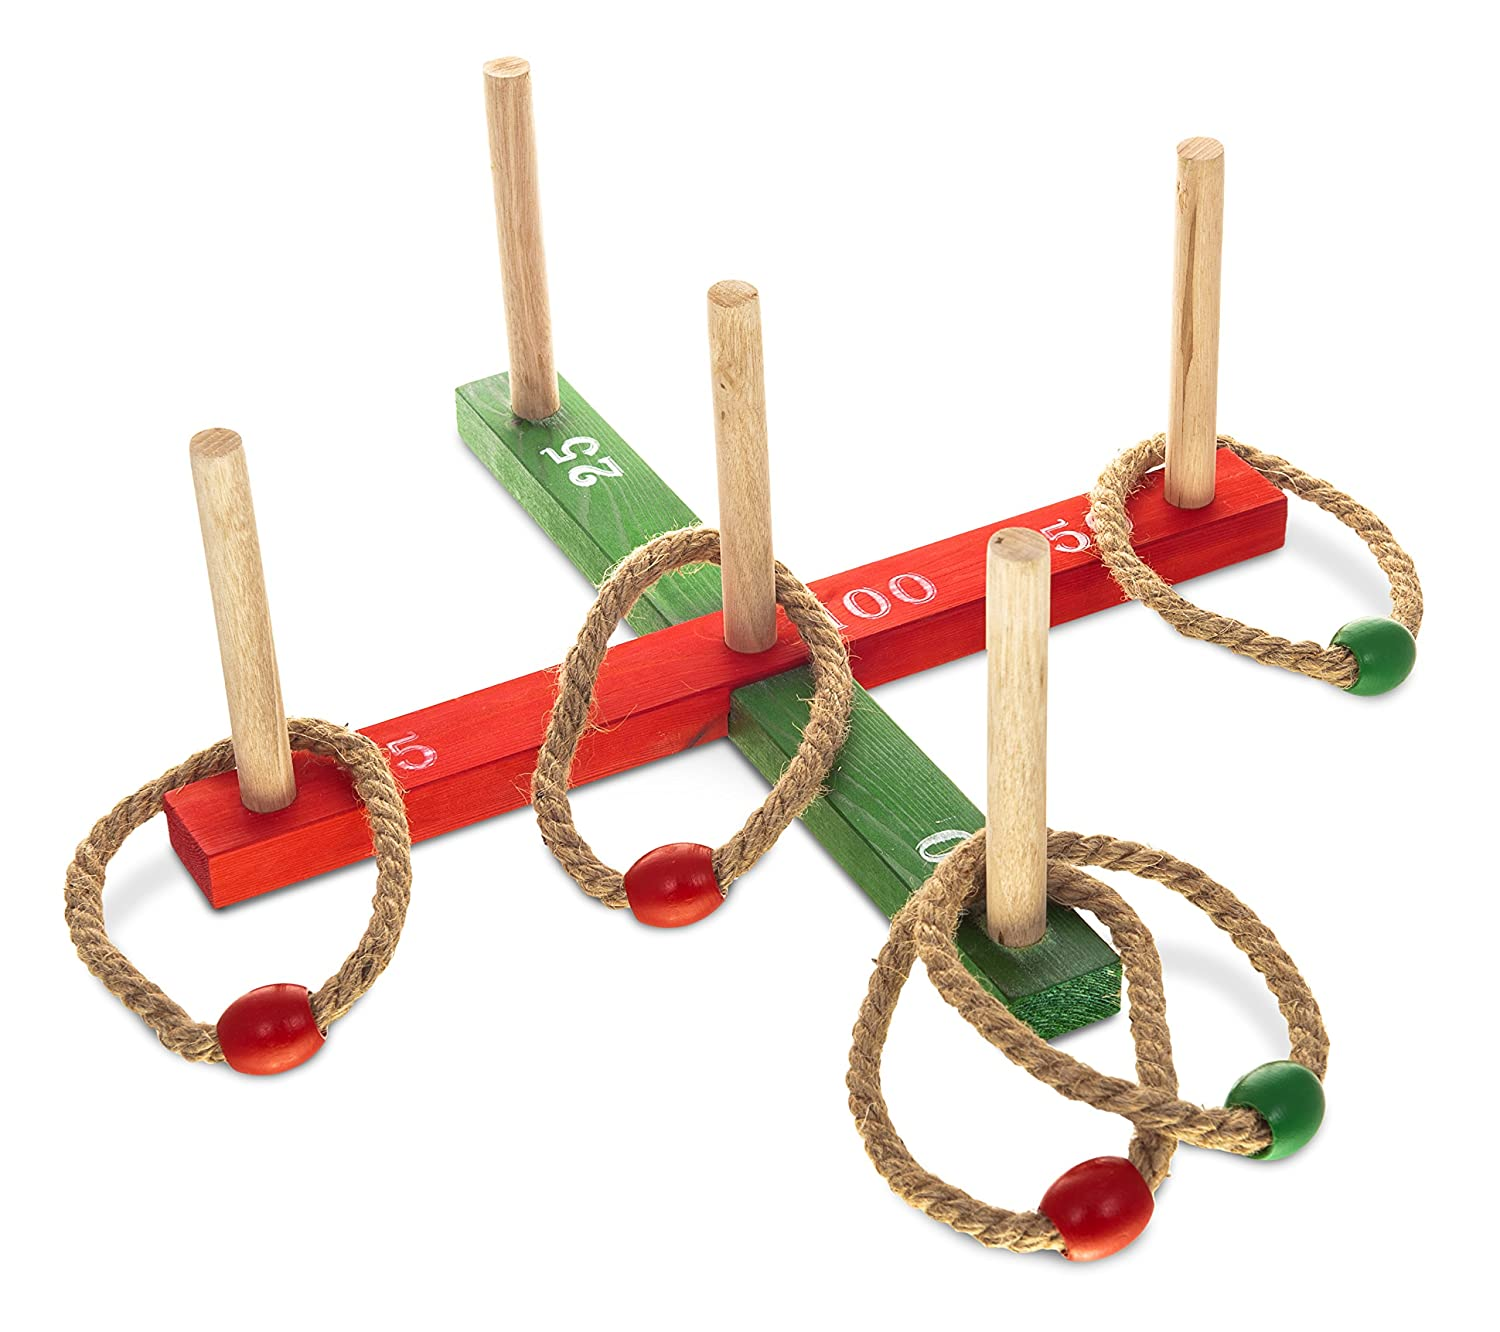 Fineway. Classic Quoits Ring Toss Rope Pegs Hoopla Wooden Outdoor Family Garden Fun Game - Ideal for Sports Day, Garden Parties and Picnics